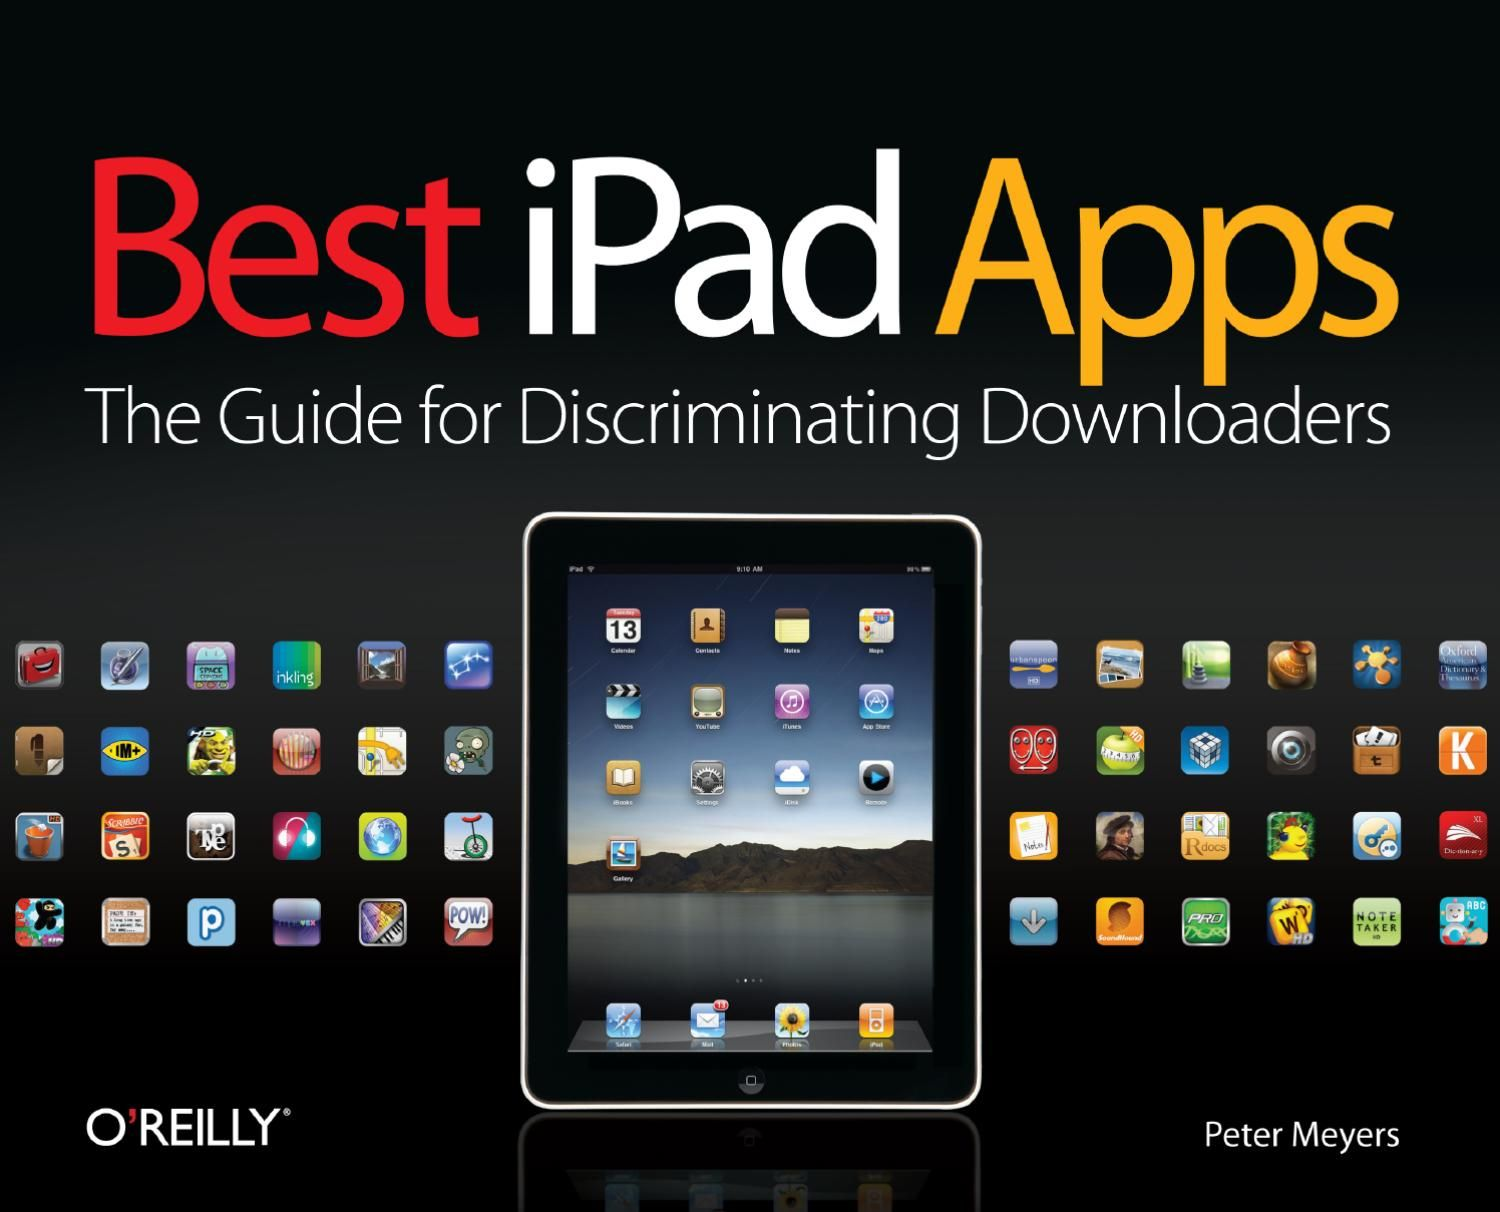 O'REILLY Best iPad Apps (With images) Best ipad, Ipad